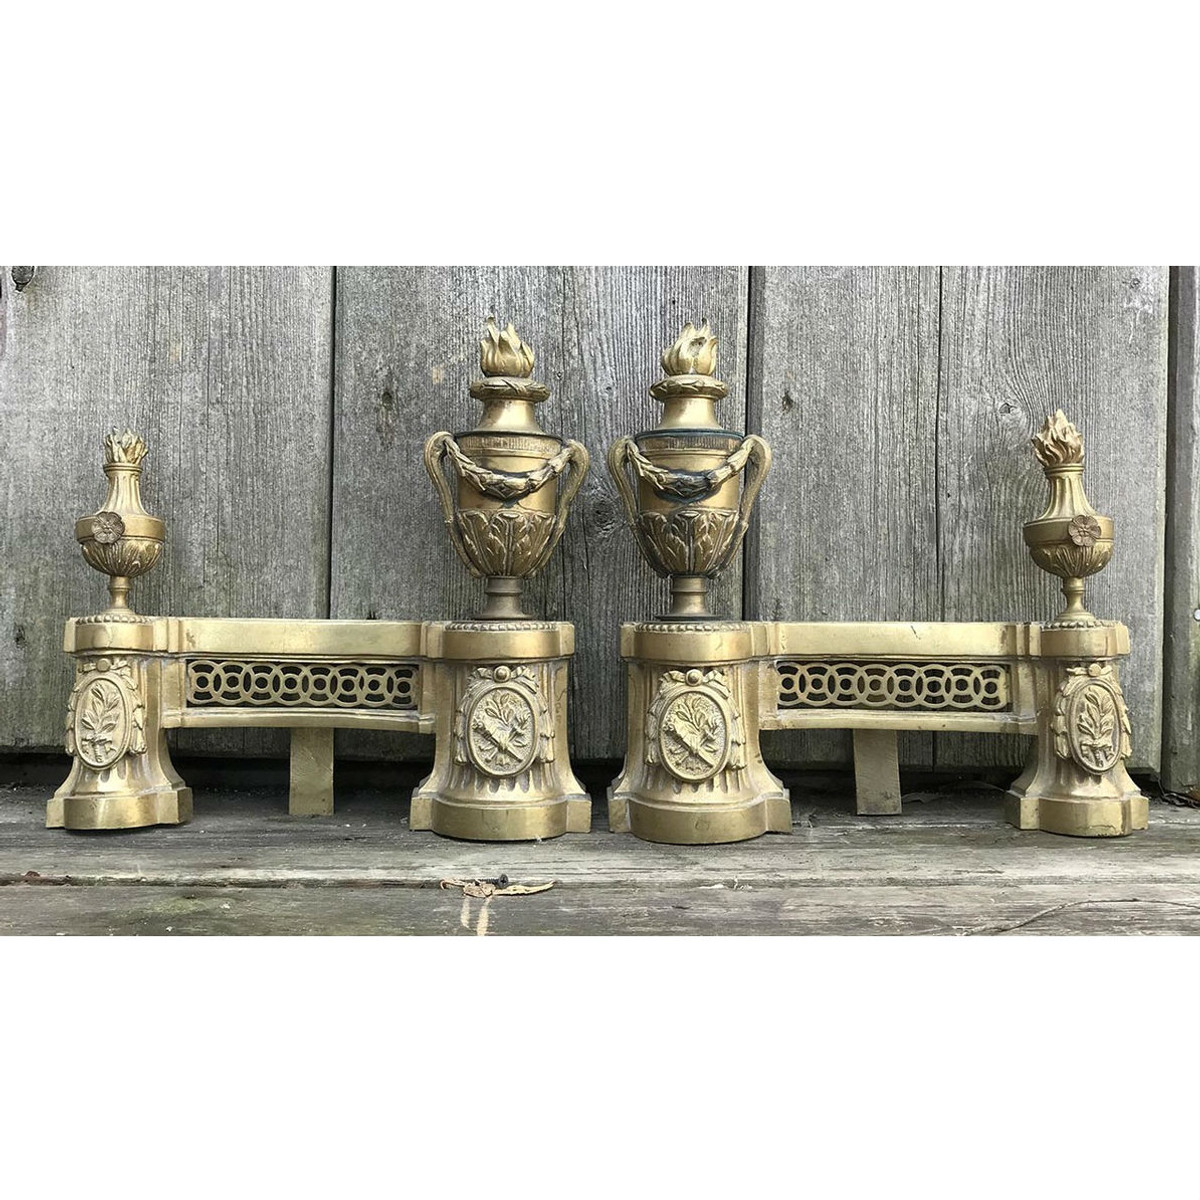 805066 - Pair of Antique Baroque Style Chenets